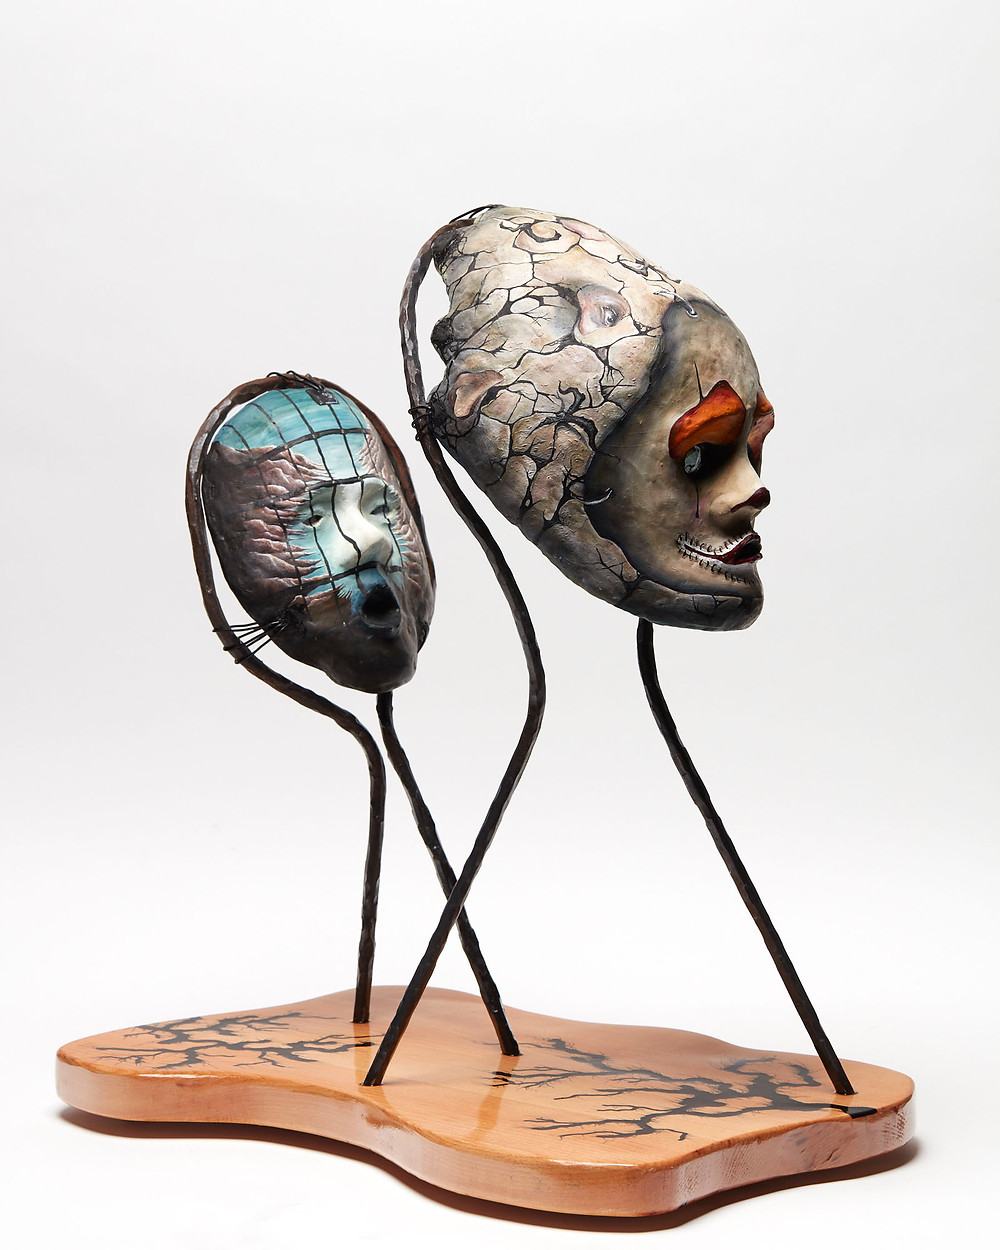 Sculpted oil painted head depicting the mental illness of Depression